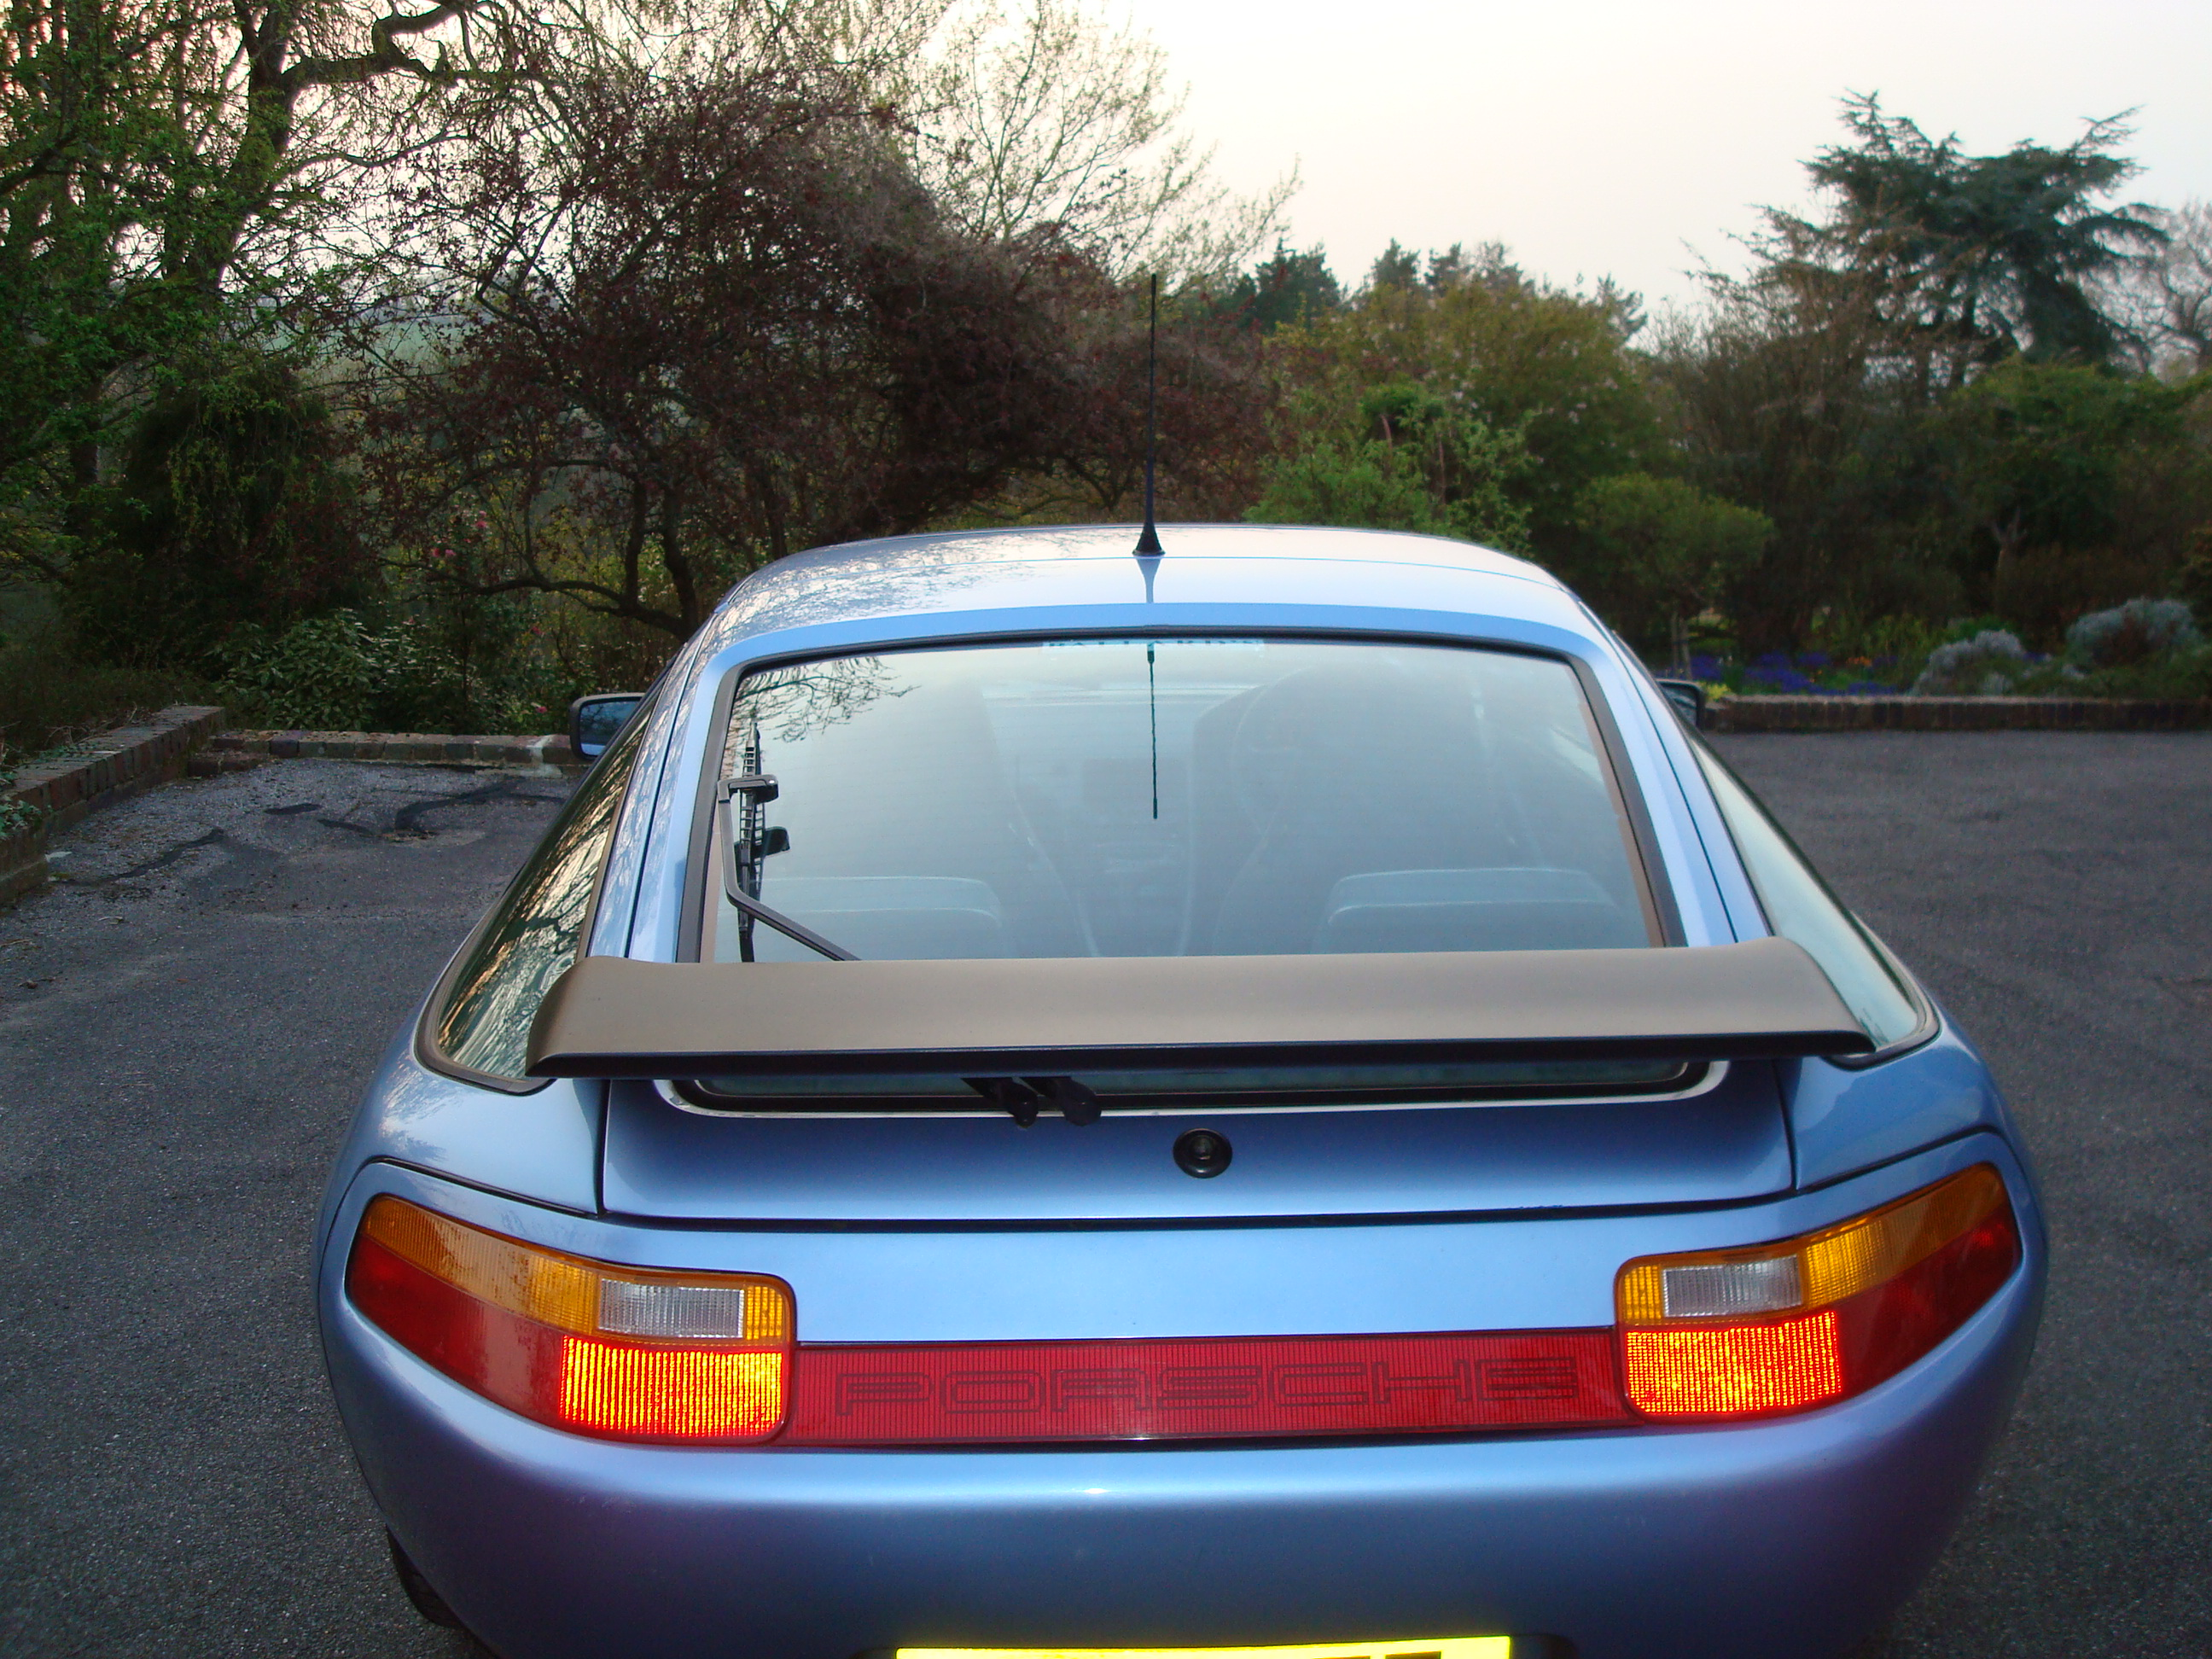 Porsche 928 S4 with a GTS rear  PU